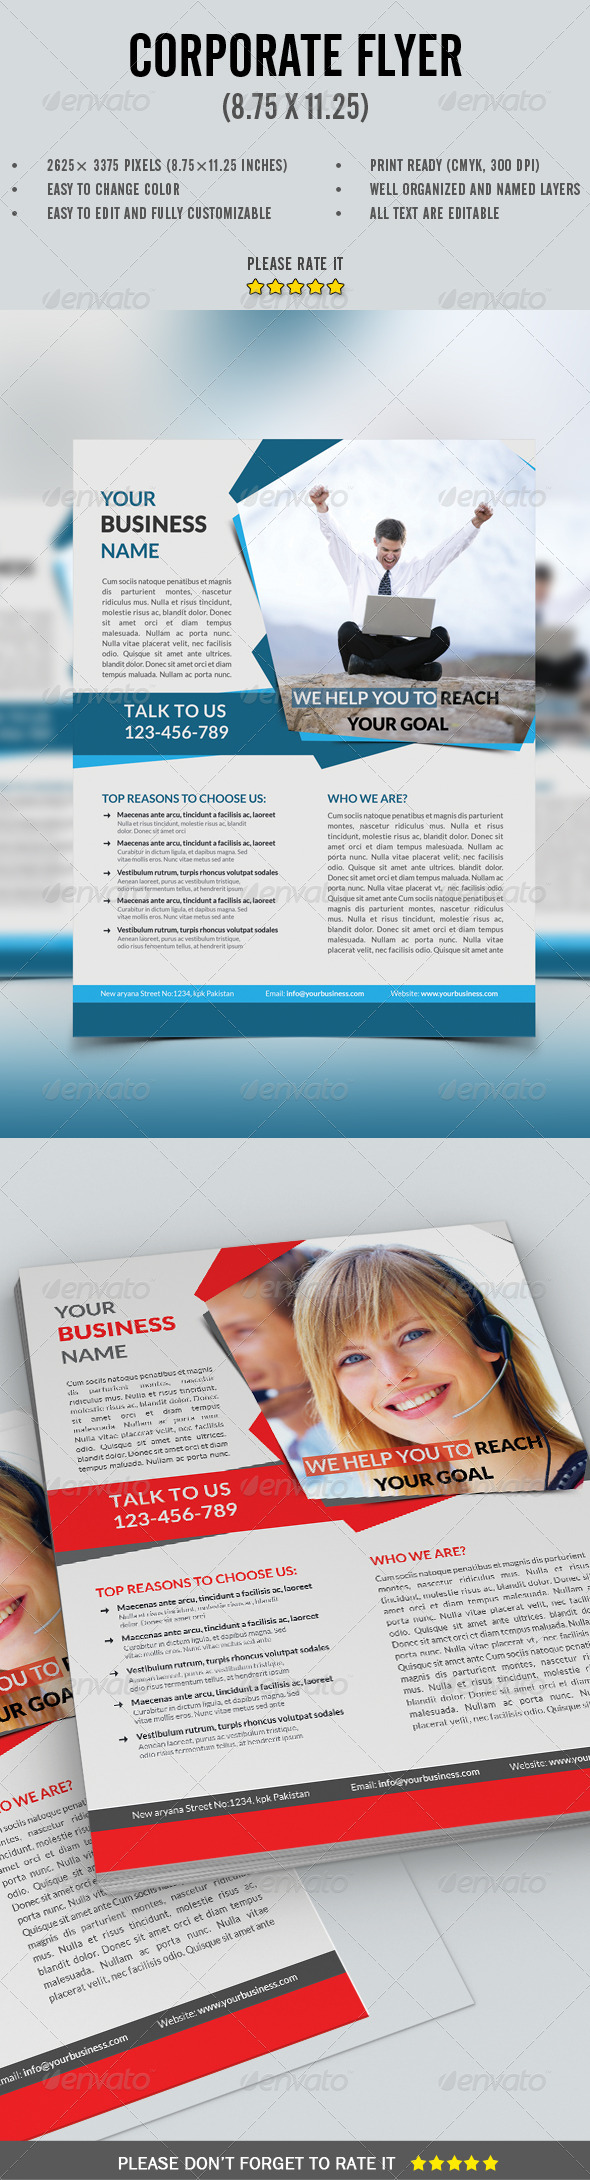 GraphicRiver Corporate Flyer 8178795